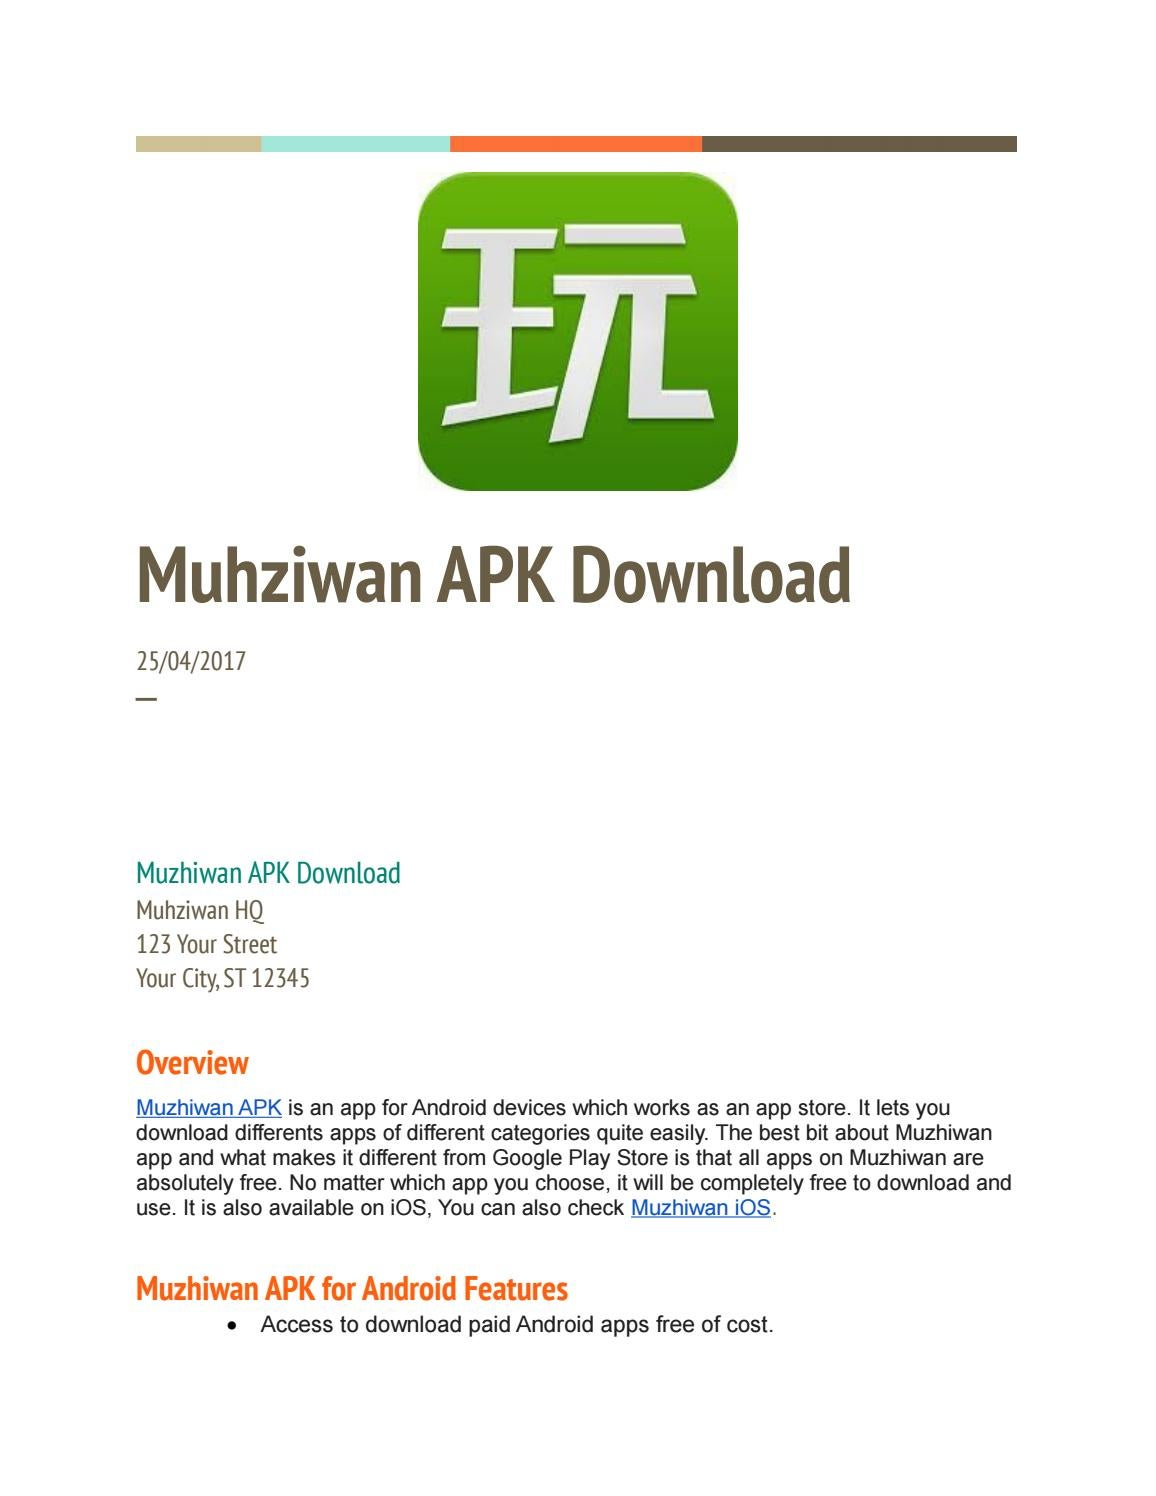 Muhziwan Apk Download By Muzhiwan Apk Download Issuu